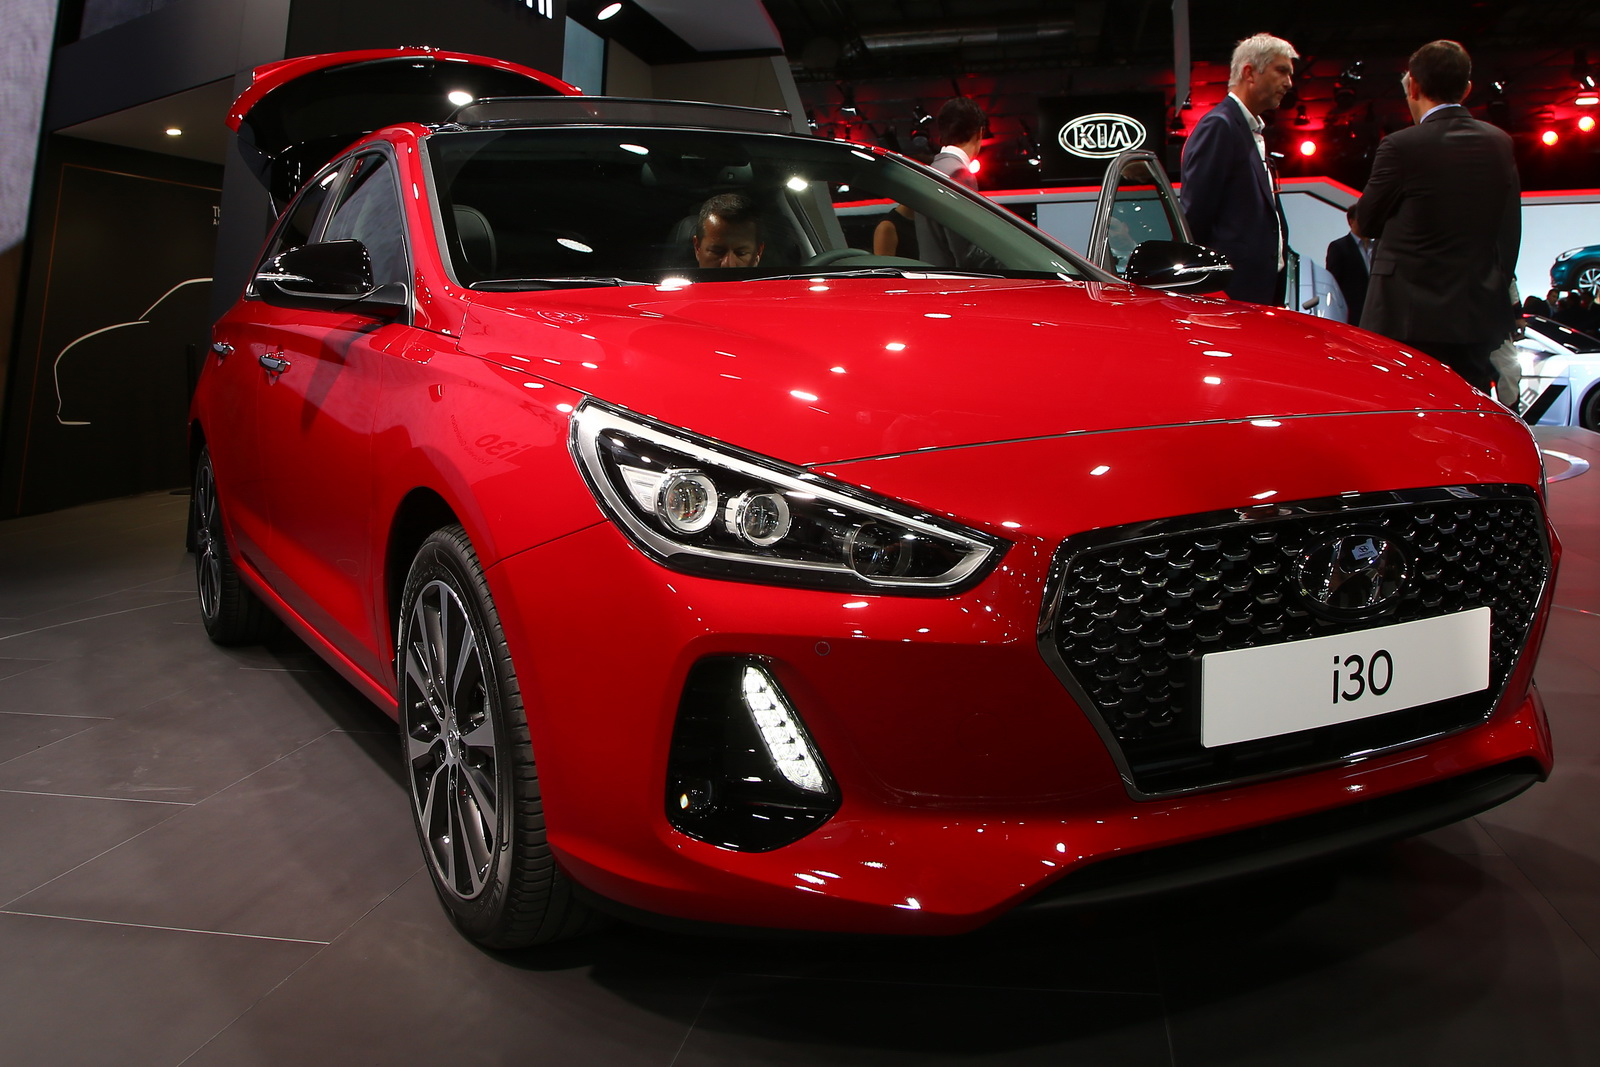 new hyundai i30 aims straight for the top of the segment carscoops. Black Bedroom Furniture Sets. Home Design Ideas